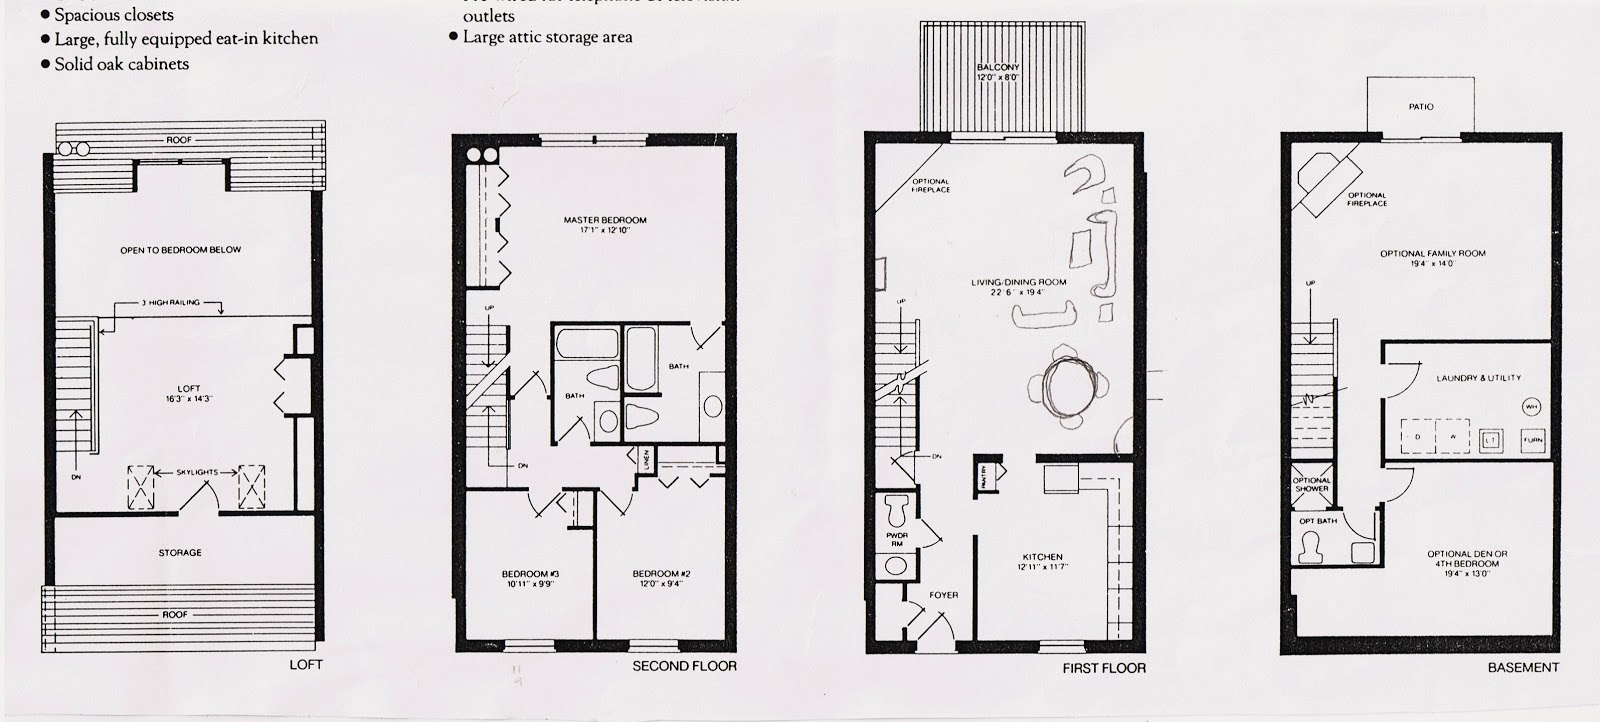 Bathroom floor plans for 7 x 10 home decorating for Bathroom design 5 x 12